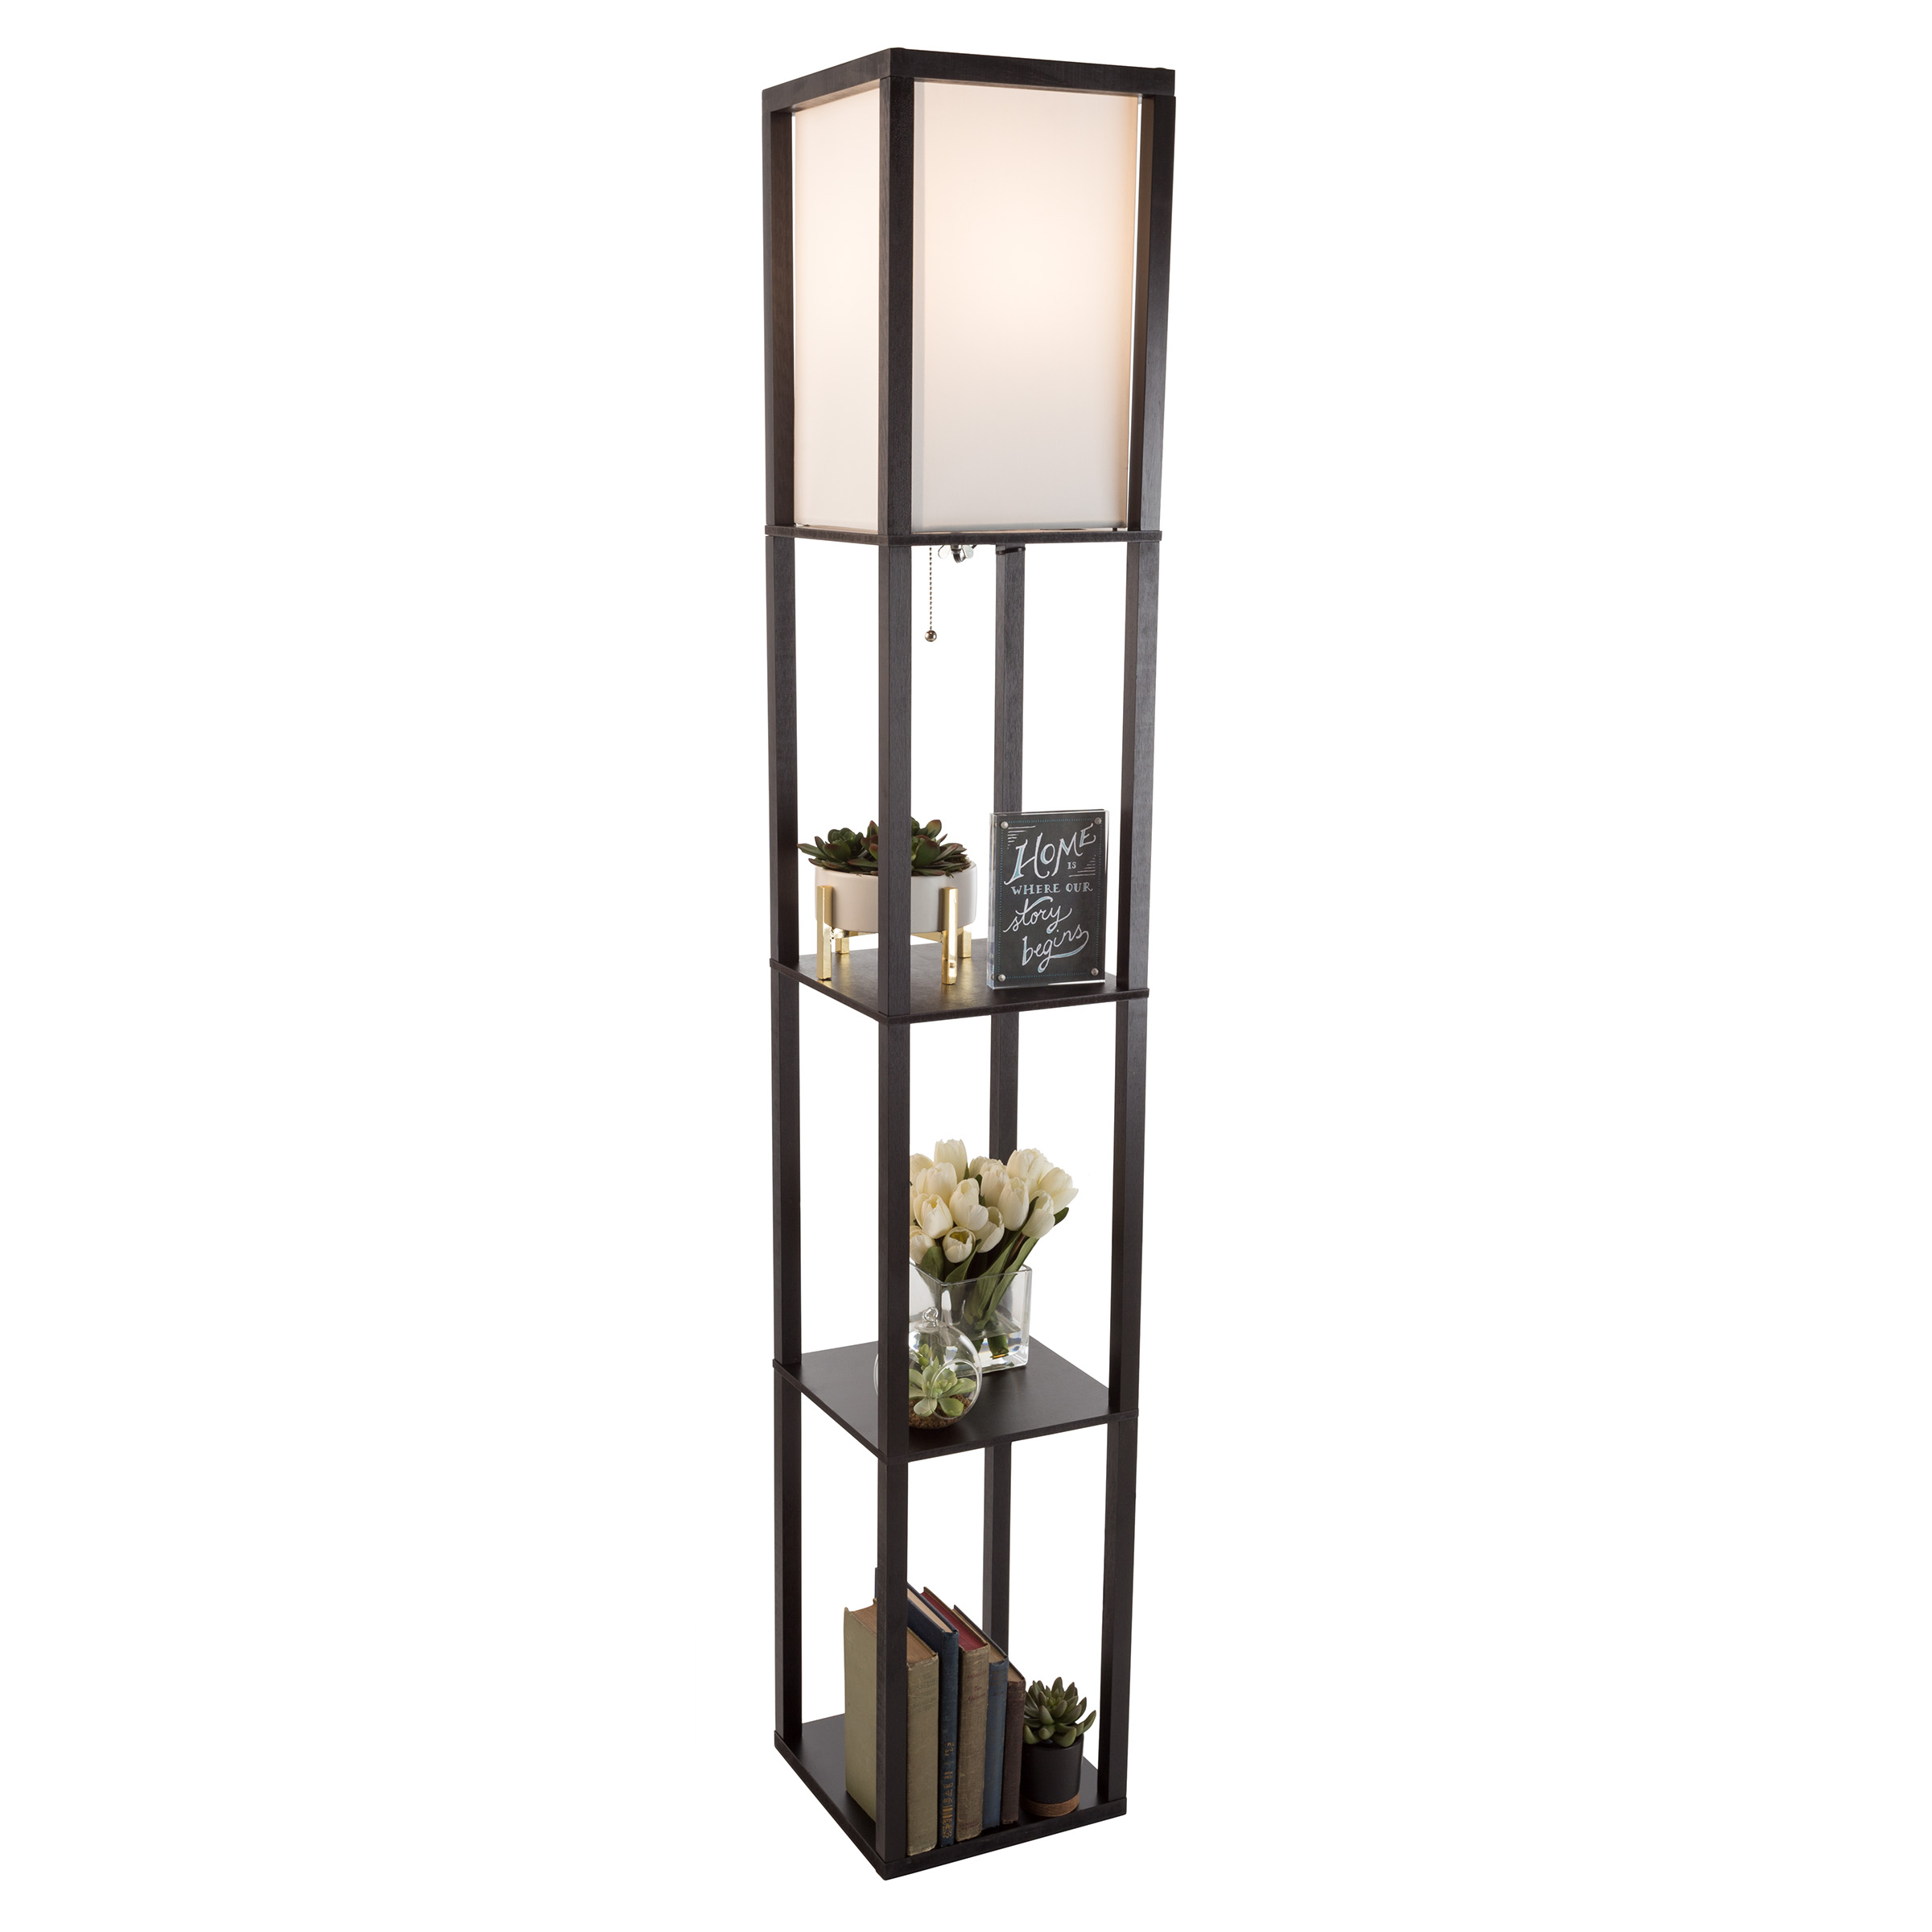 Etagere Style Tall Standing Floor Lamp With Shade, 3 Tiers Storage Shelving  By Lavish Home